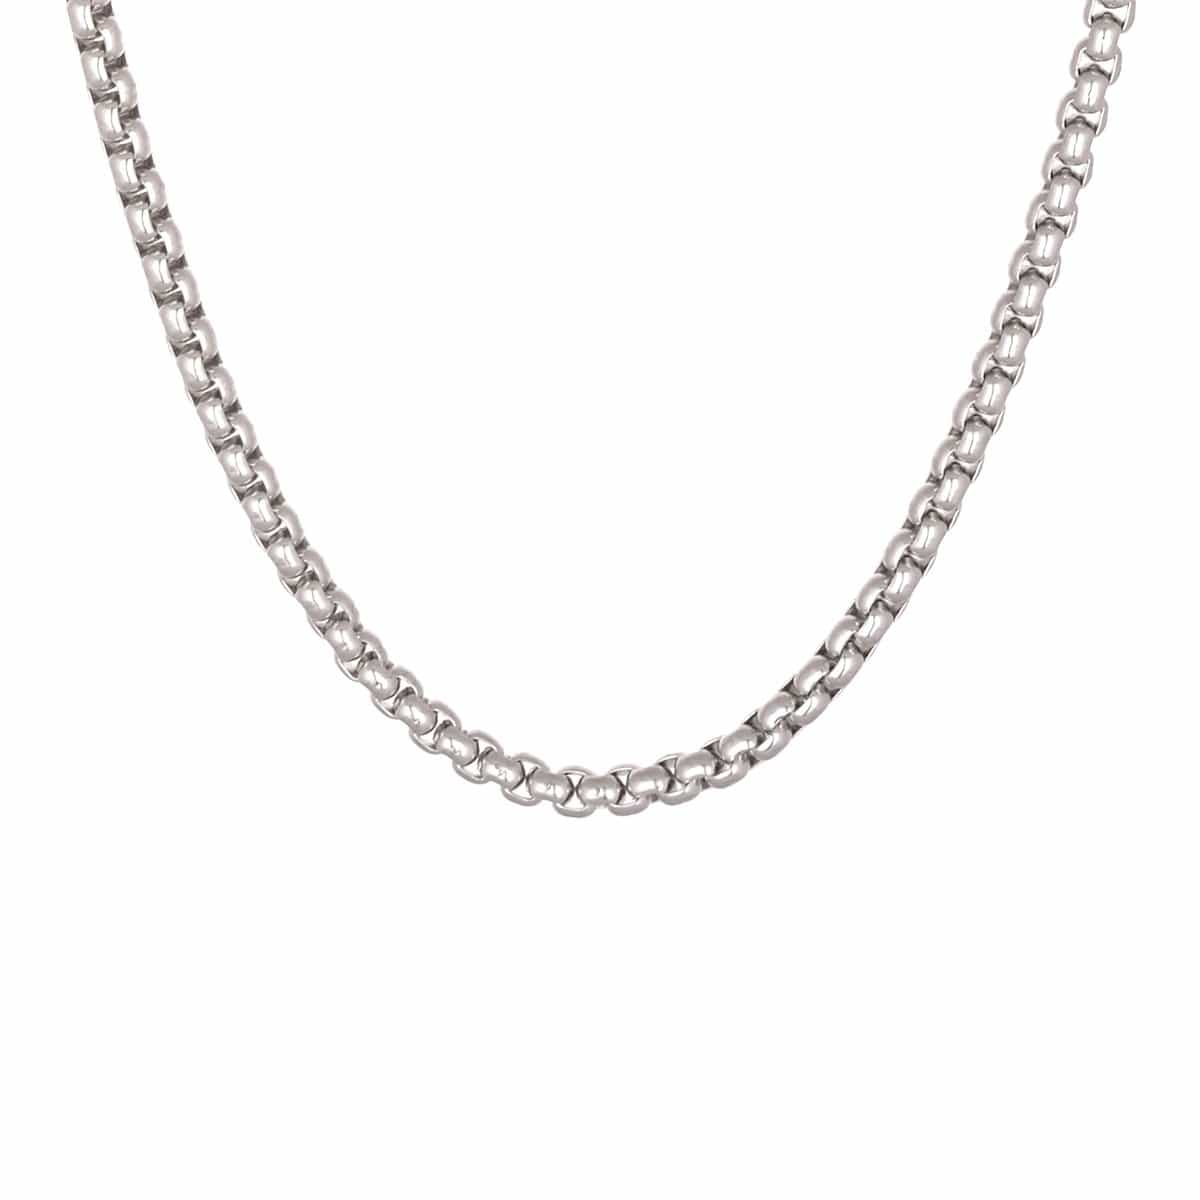 Silver Stainless Steel 5mm Polished Bold Box Link Chain Chains